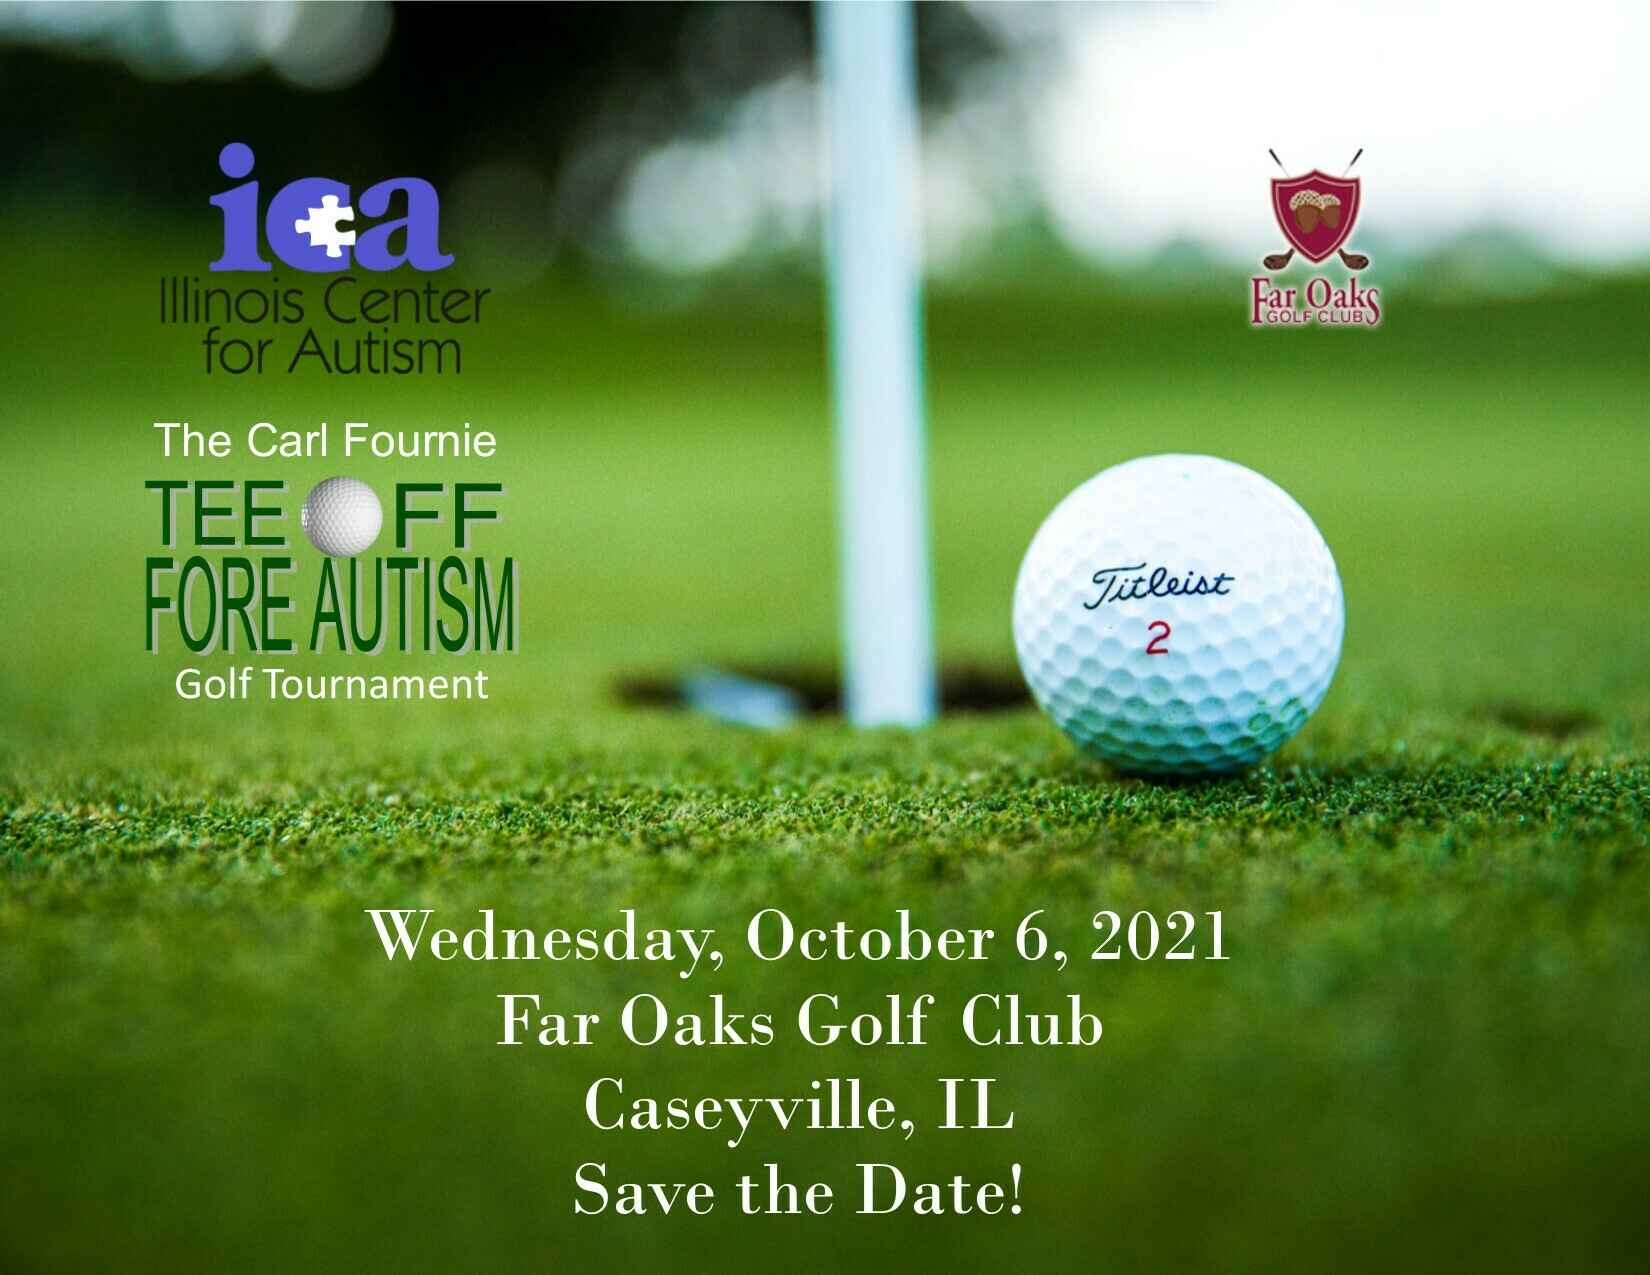 2021 Registration for Carl Fournie Tee Off Fore Autism Golf Tournament image